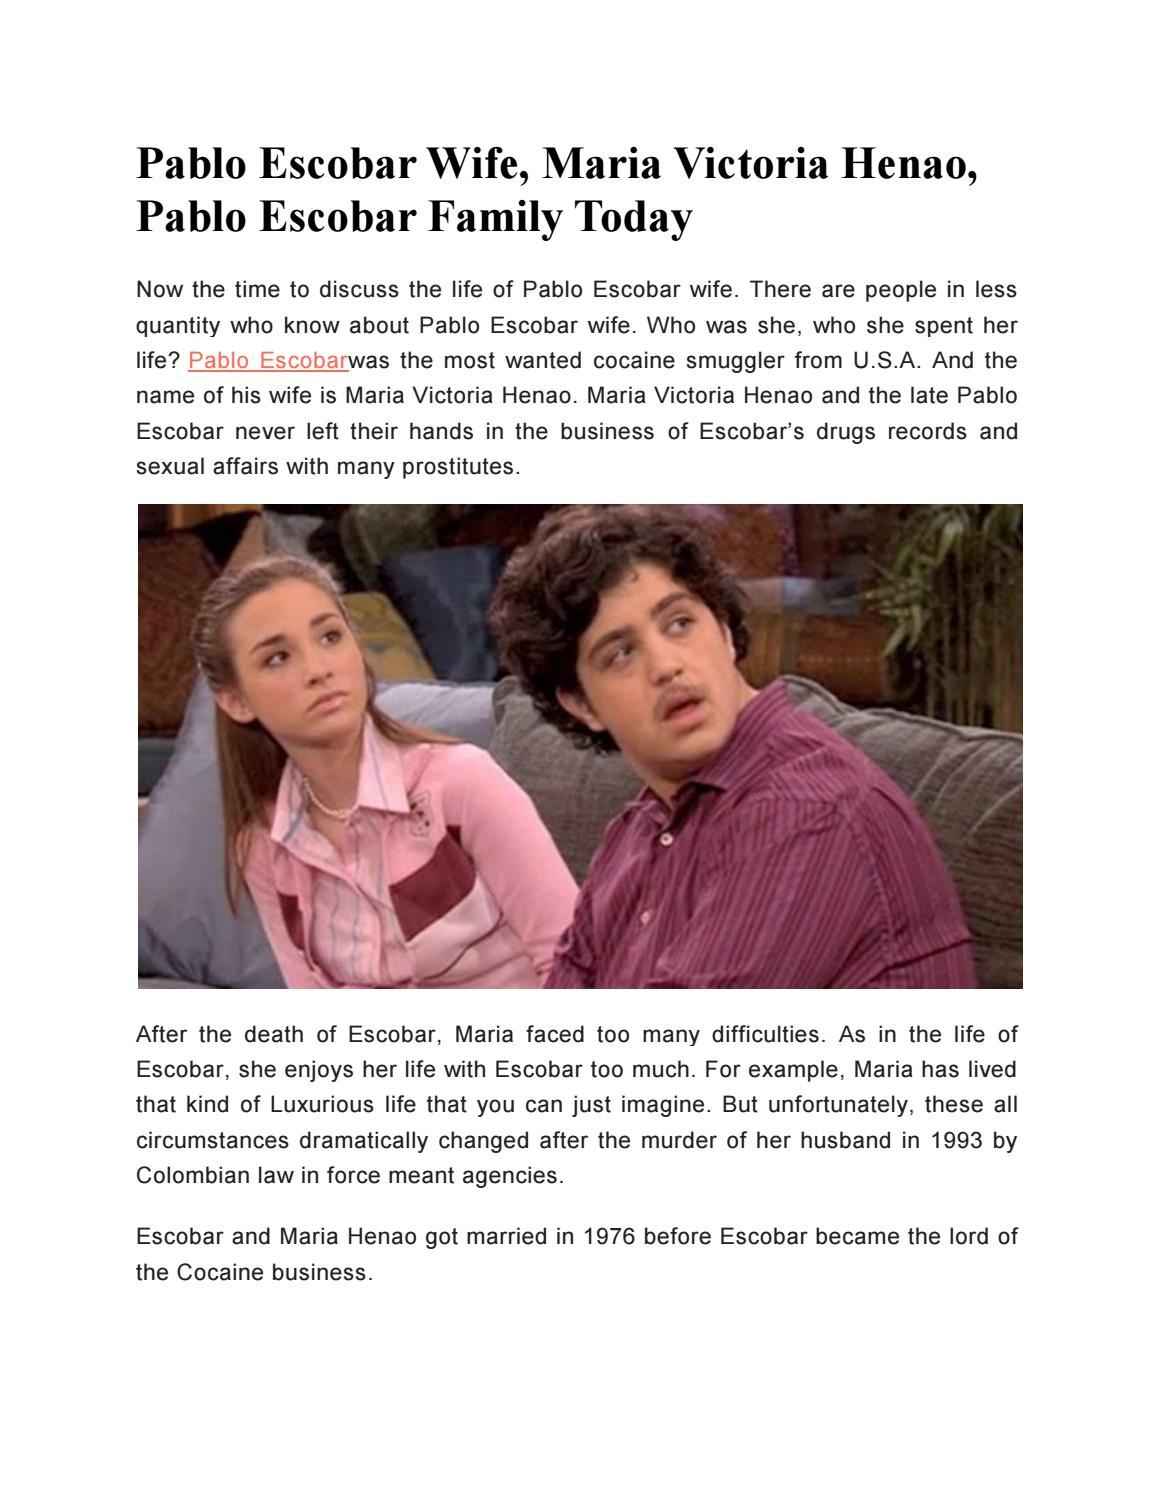 Pablo Escobar Maria Victoria Henao >> Pablo Escobar Wife, Maria Victoria Henao, Pablo Escobar Family Today by WickedFacts - Issuu